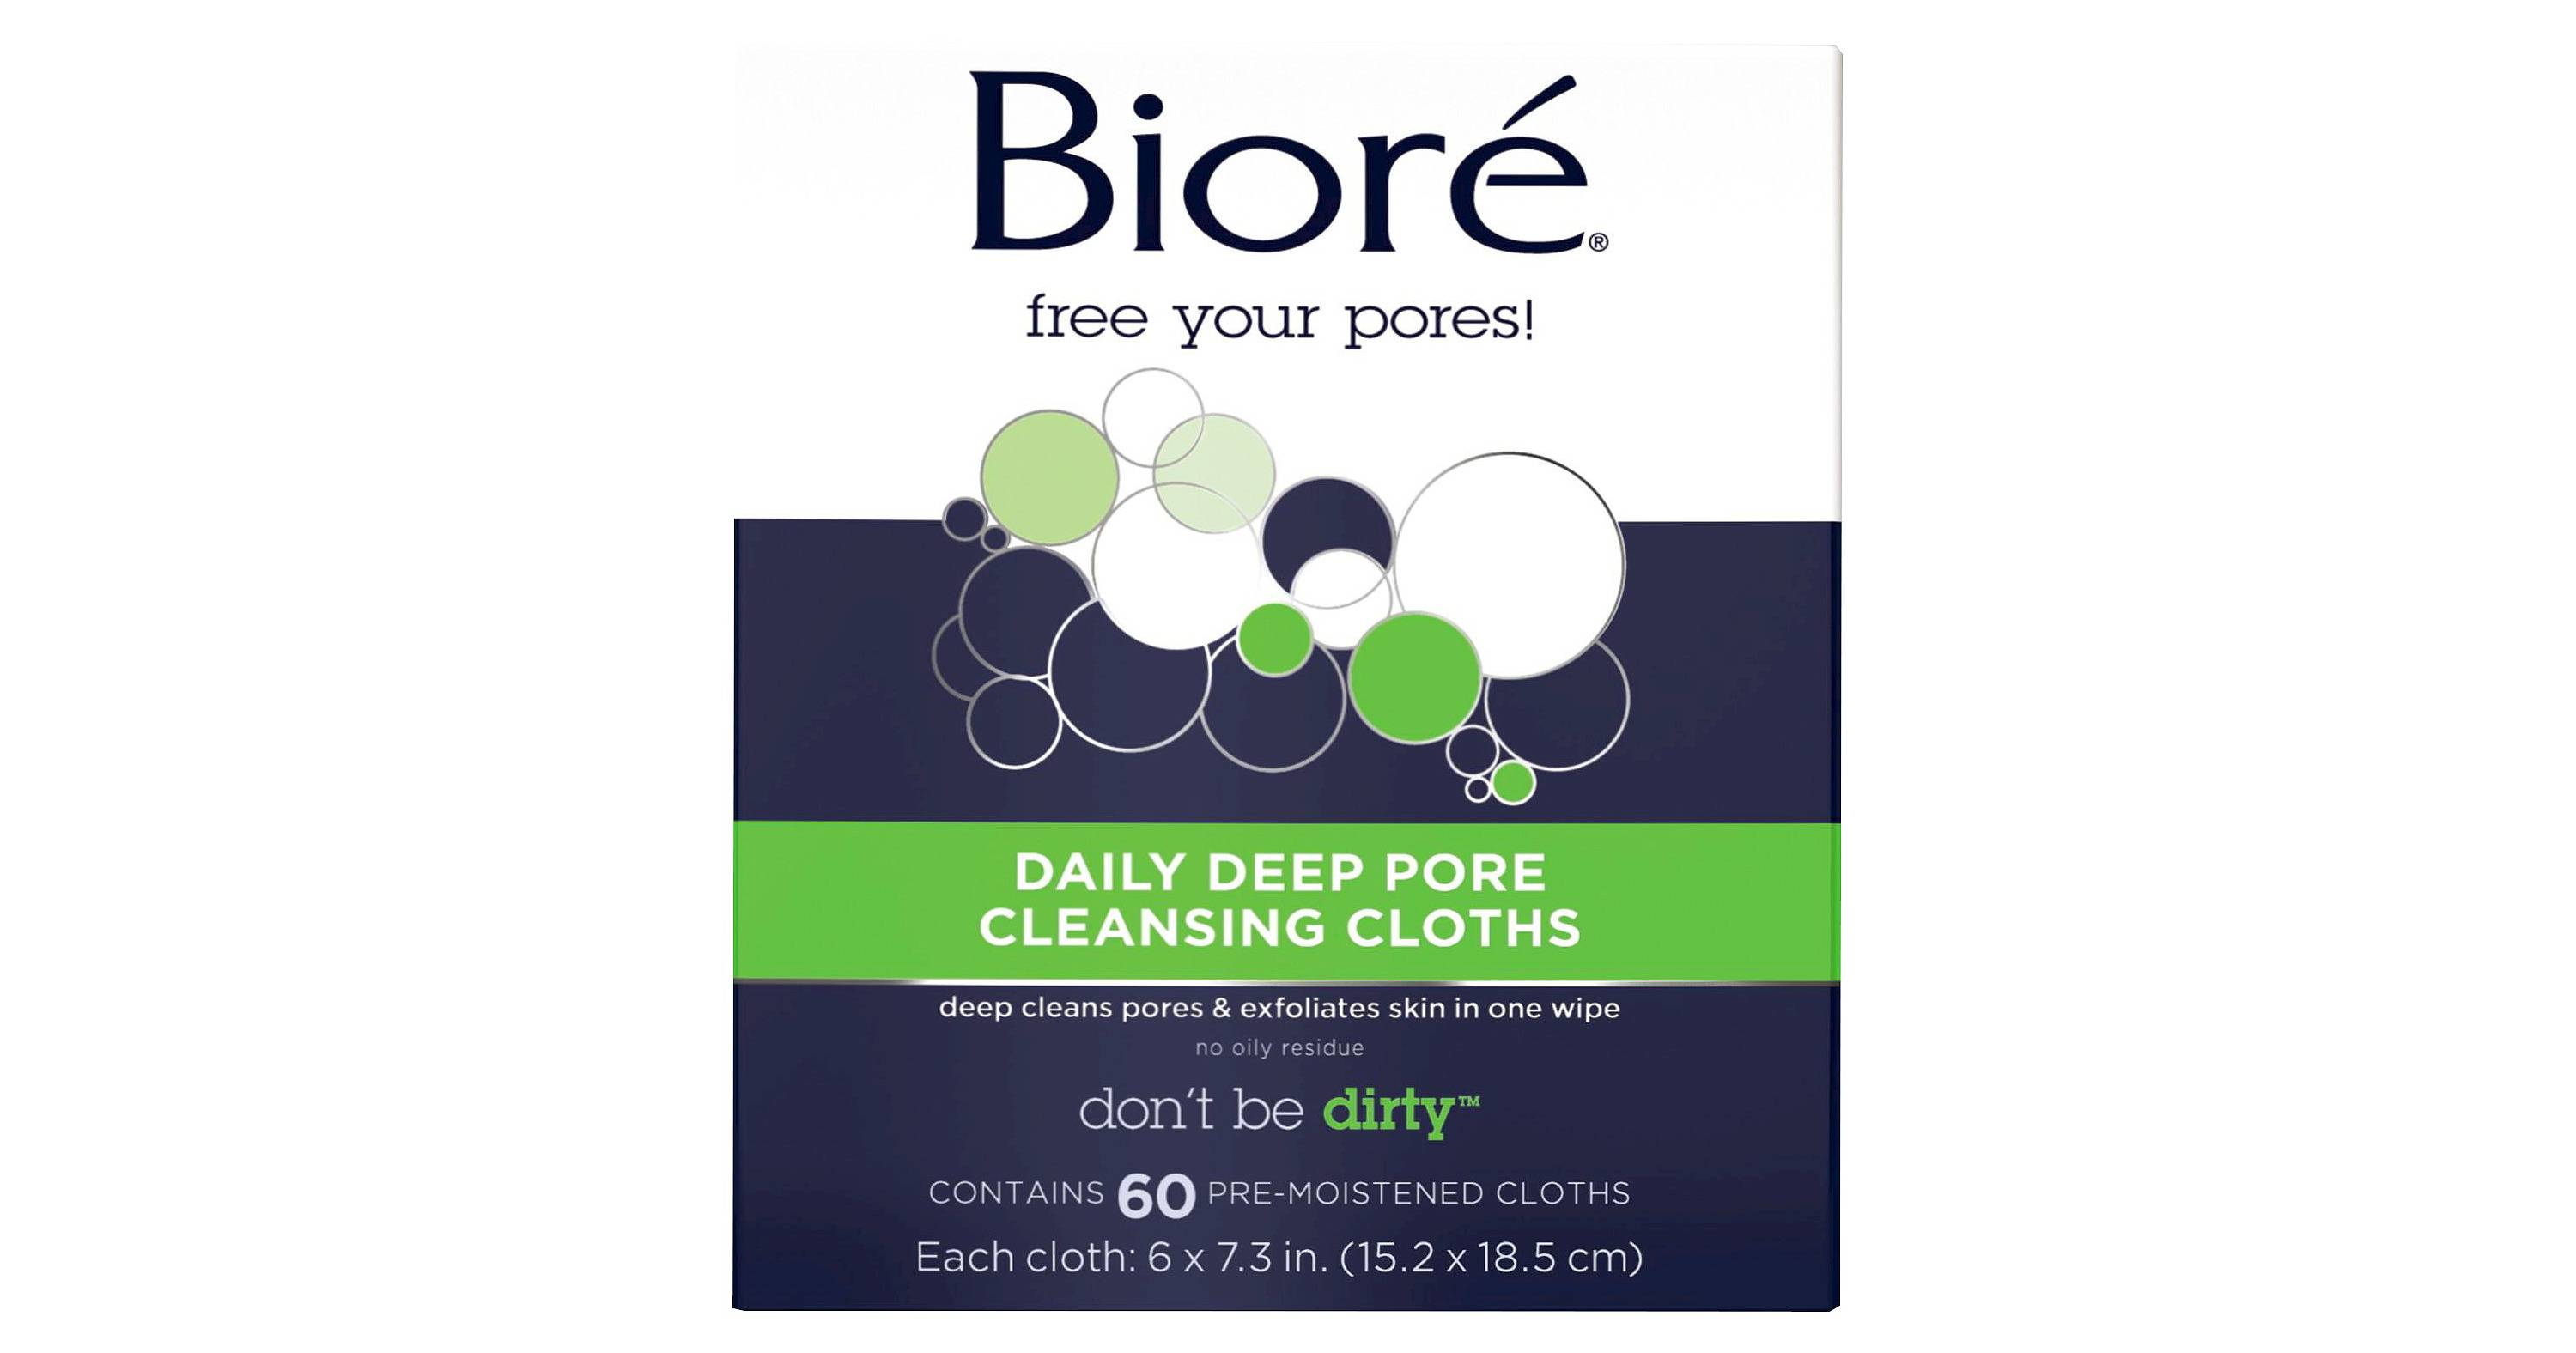 Biore face wipes